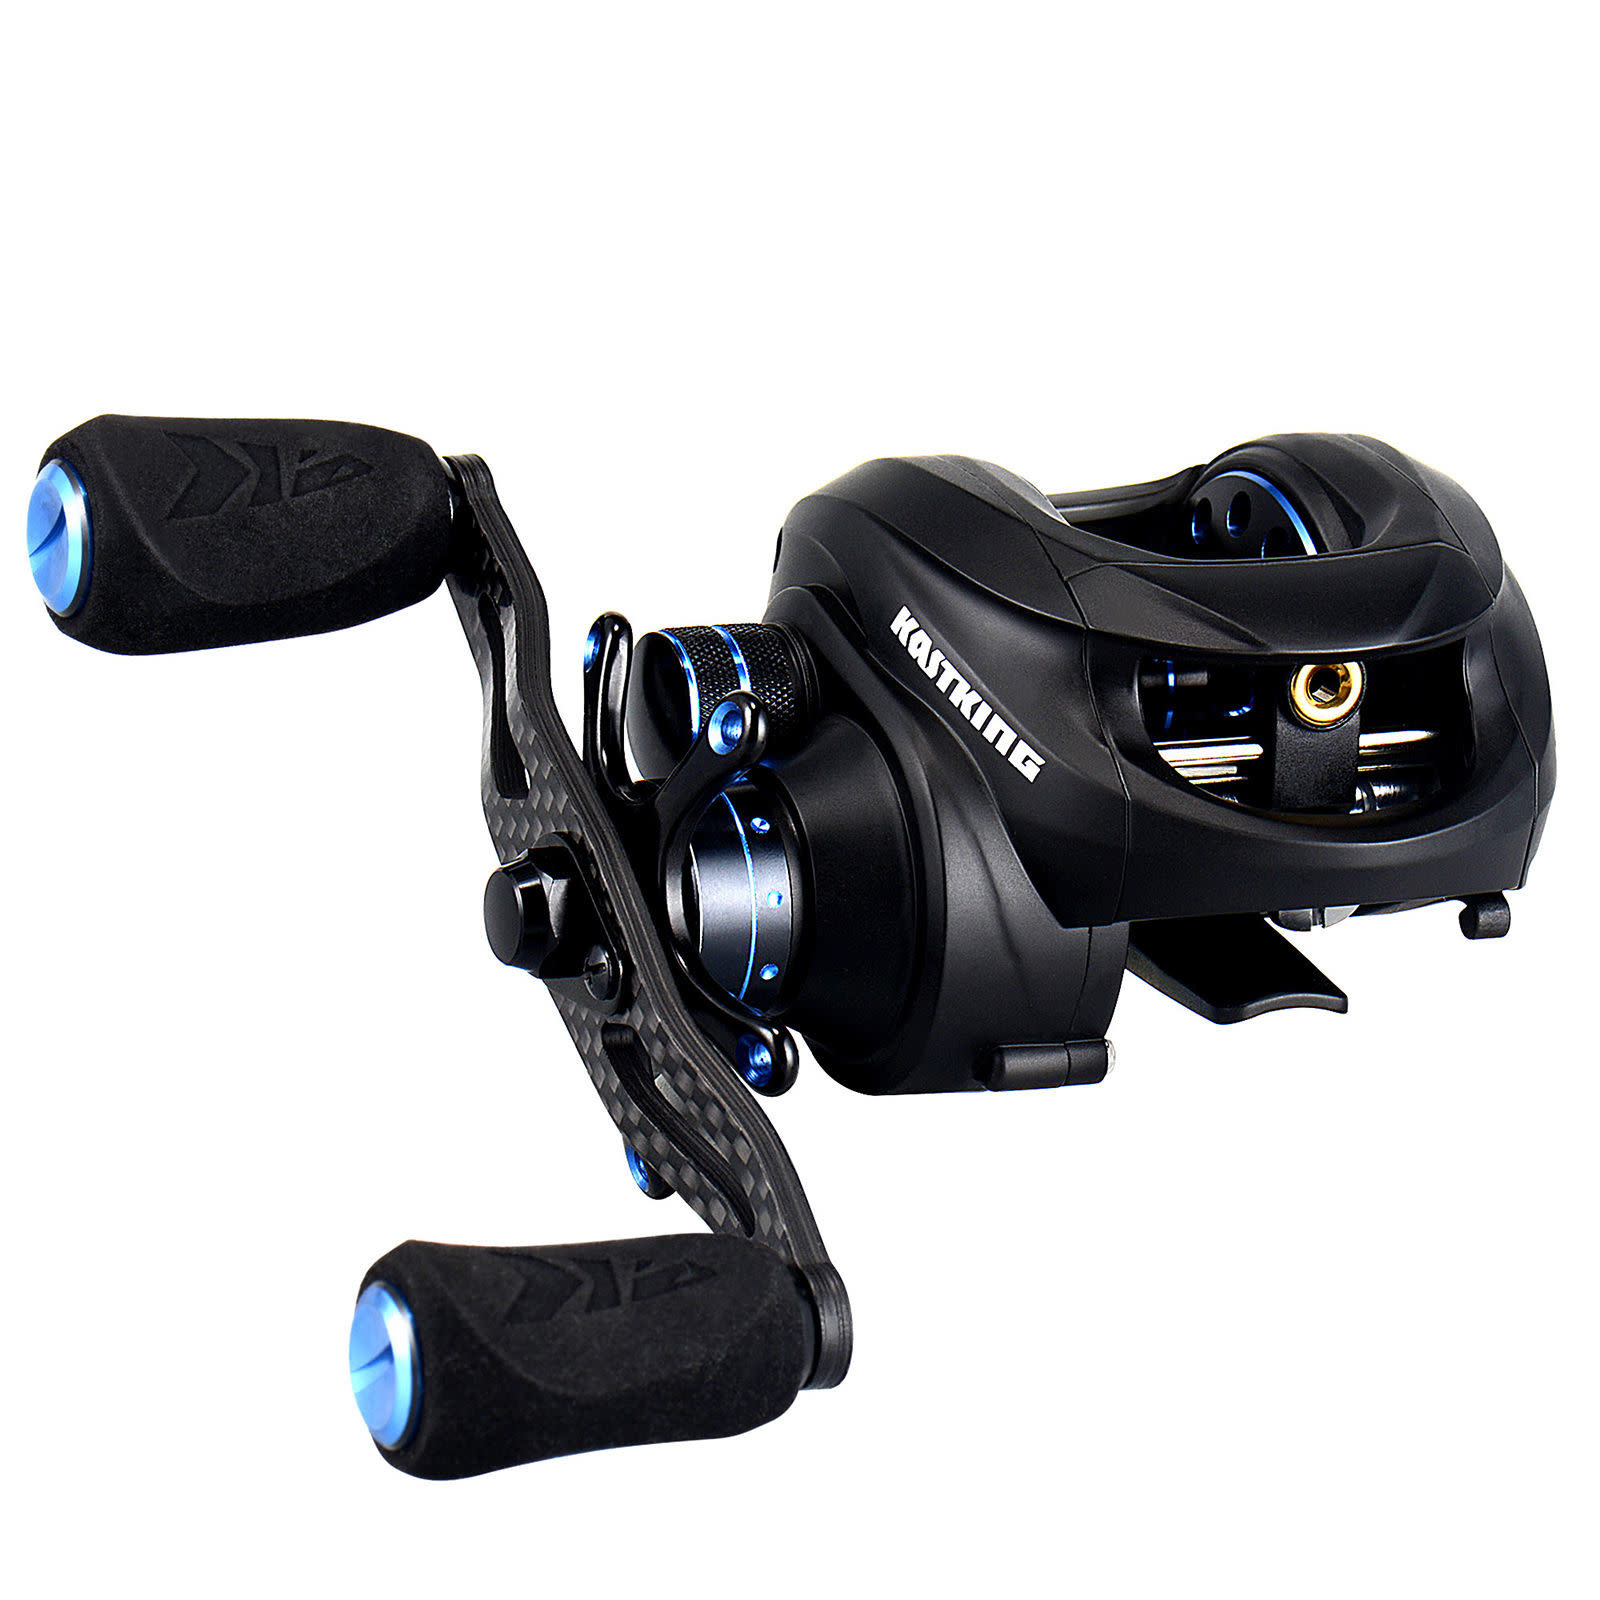 NEW - KASTKING ASSASSIN CARBON BAITCASTING REEL